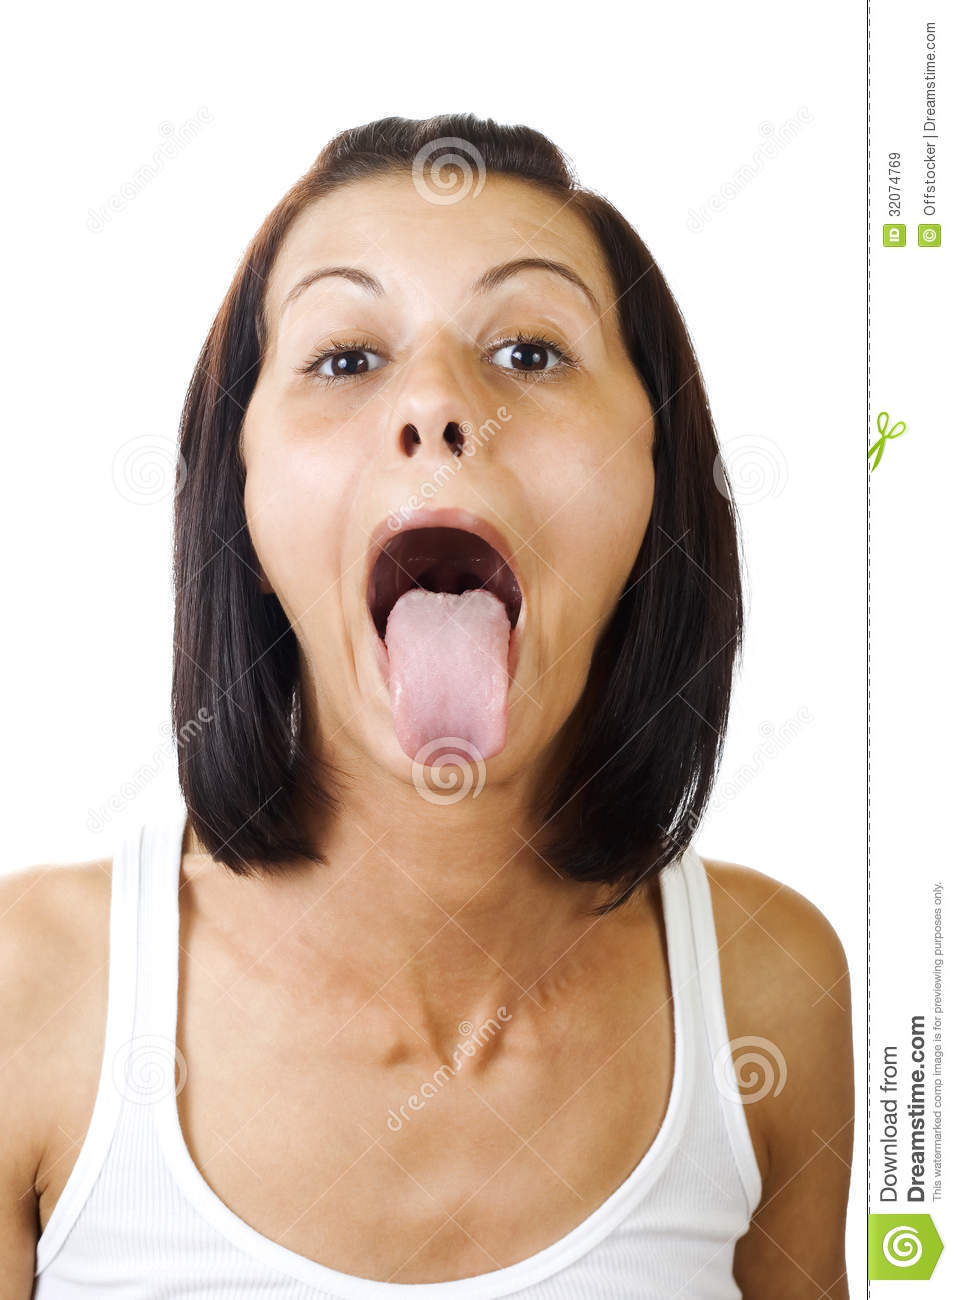 woman spanked for sticking her tongue out